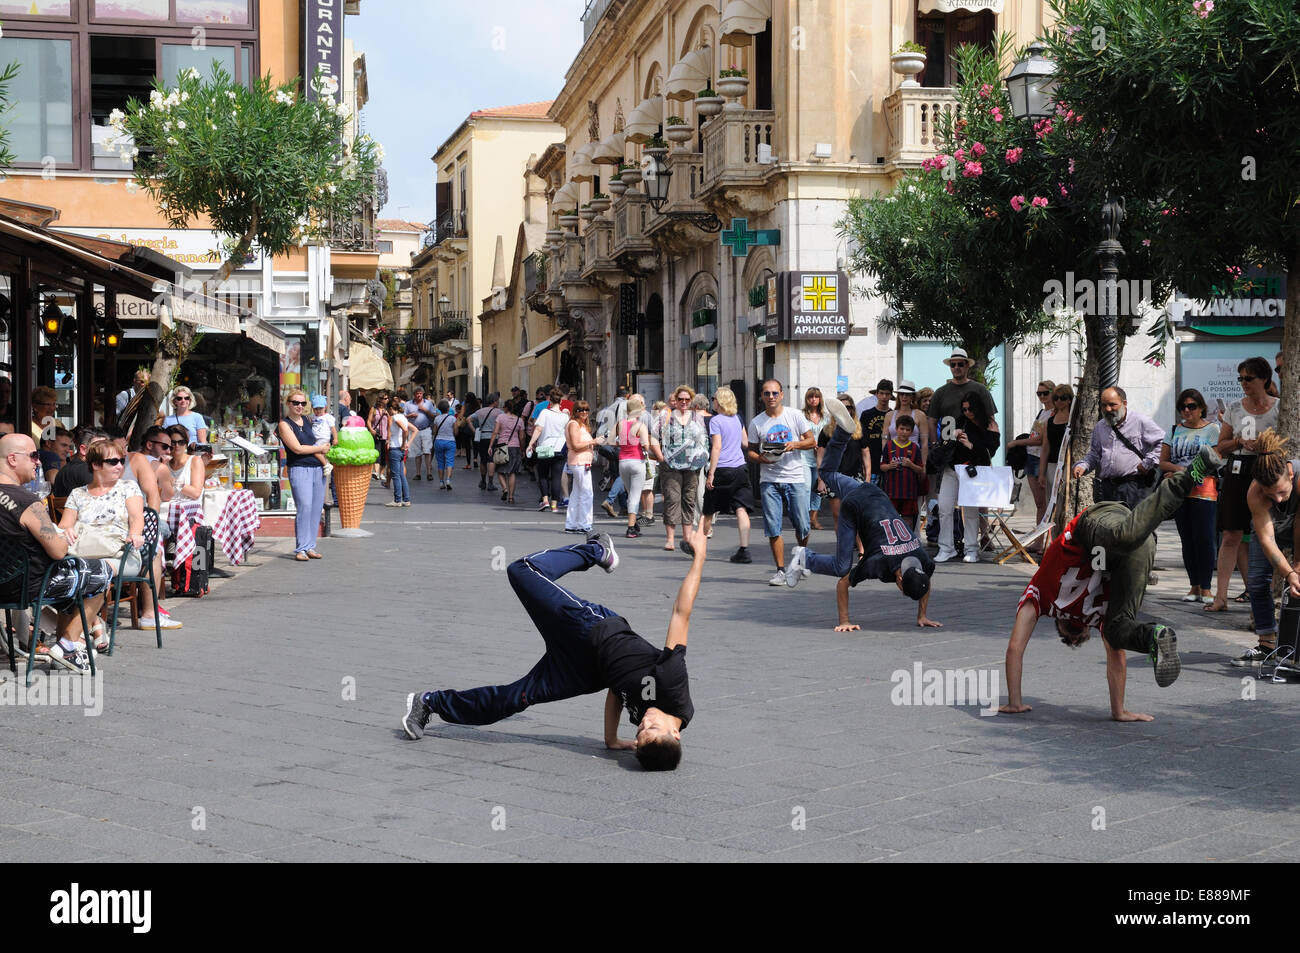 Rap dancers entertaining tourists in a square  Taormina Sicily Italy - Stock Image